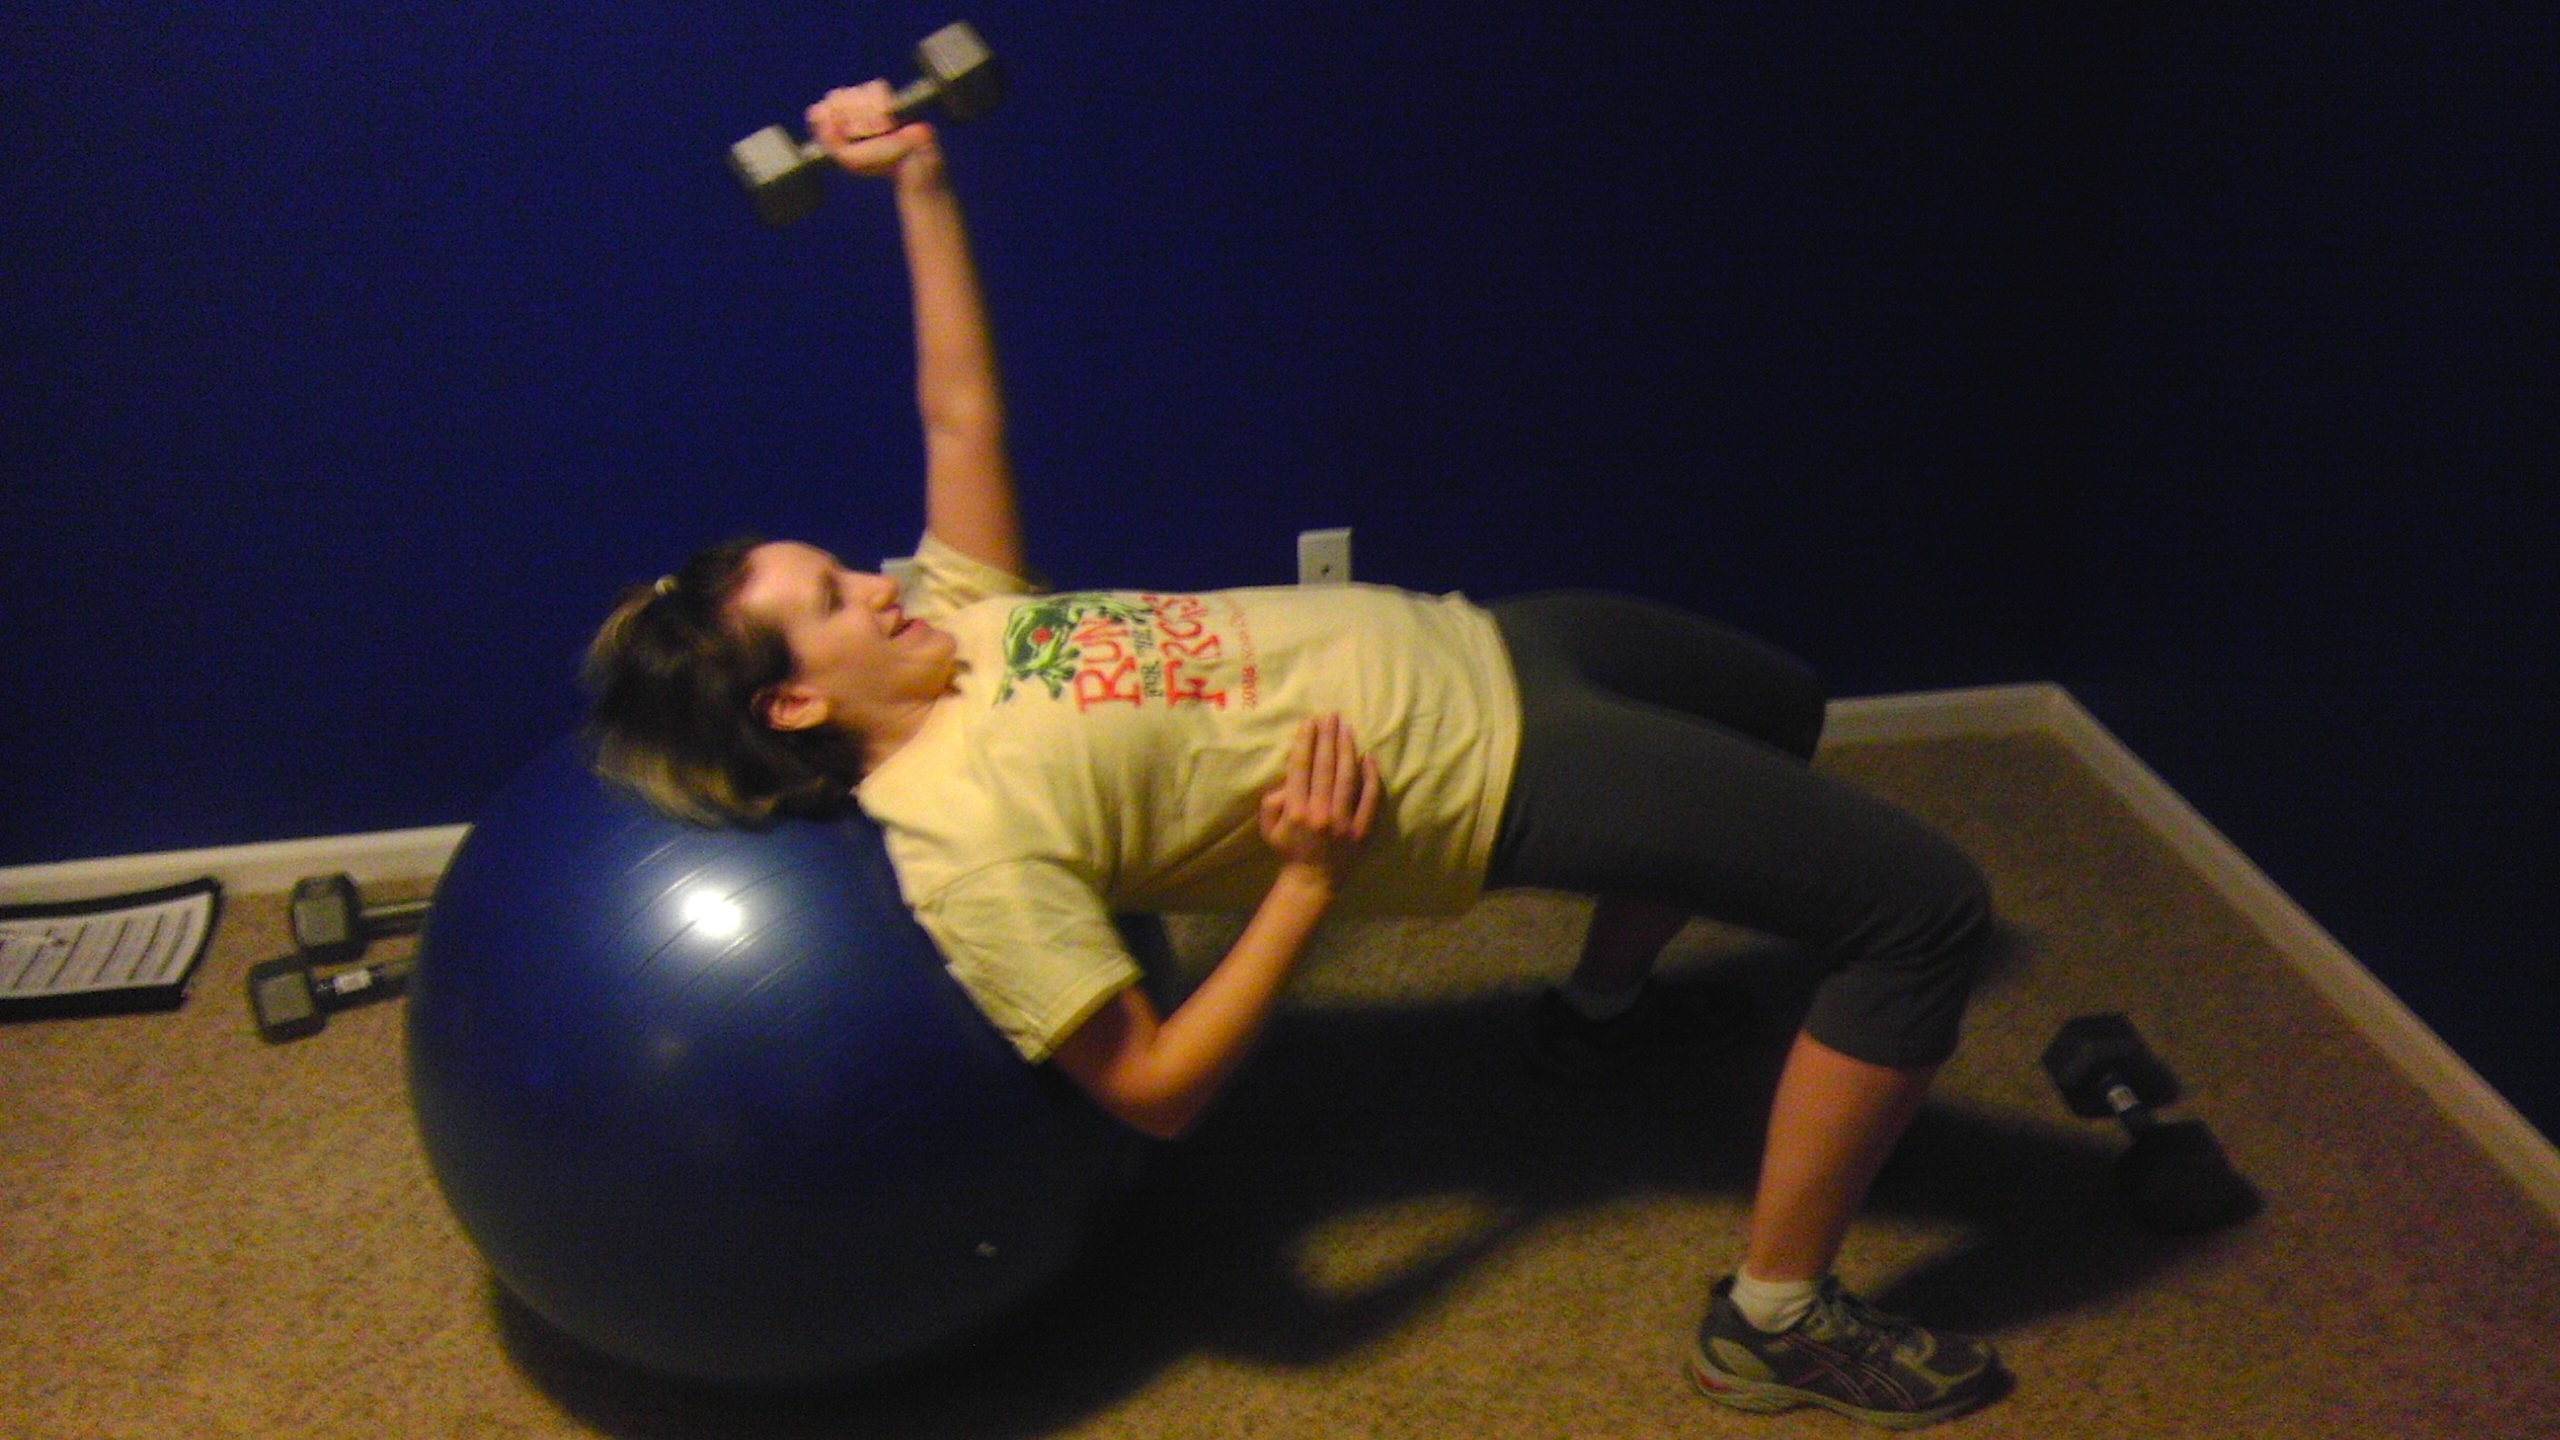 P90x2 Review Trying The Whole P90x Thing Again